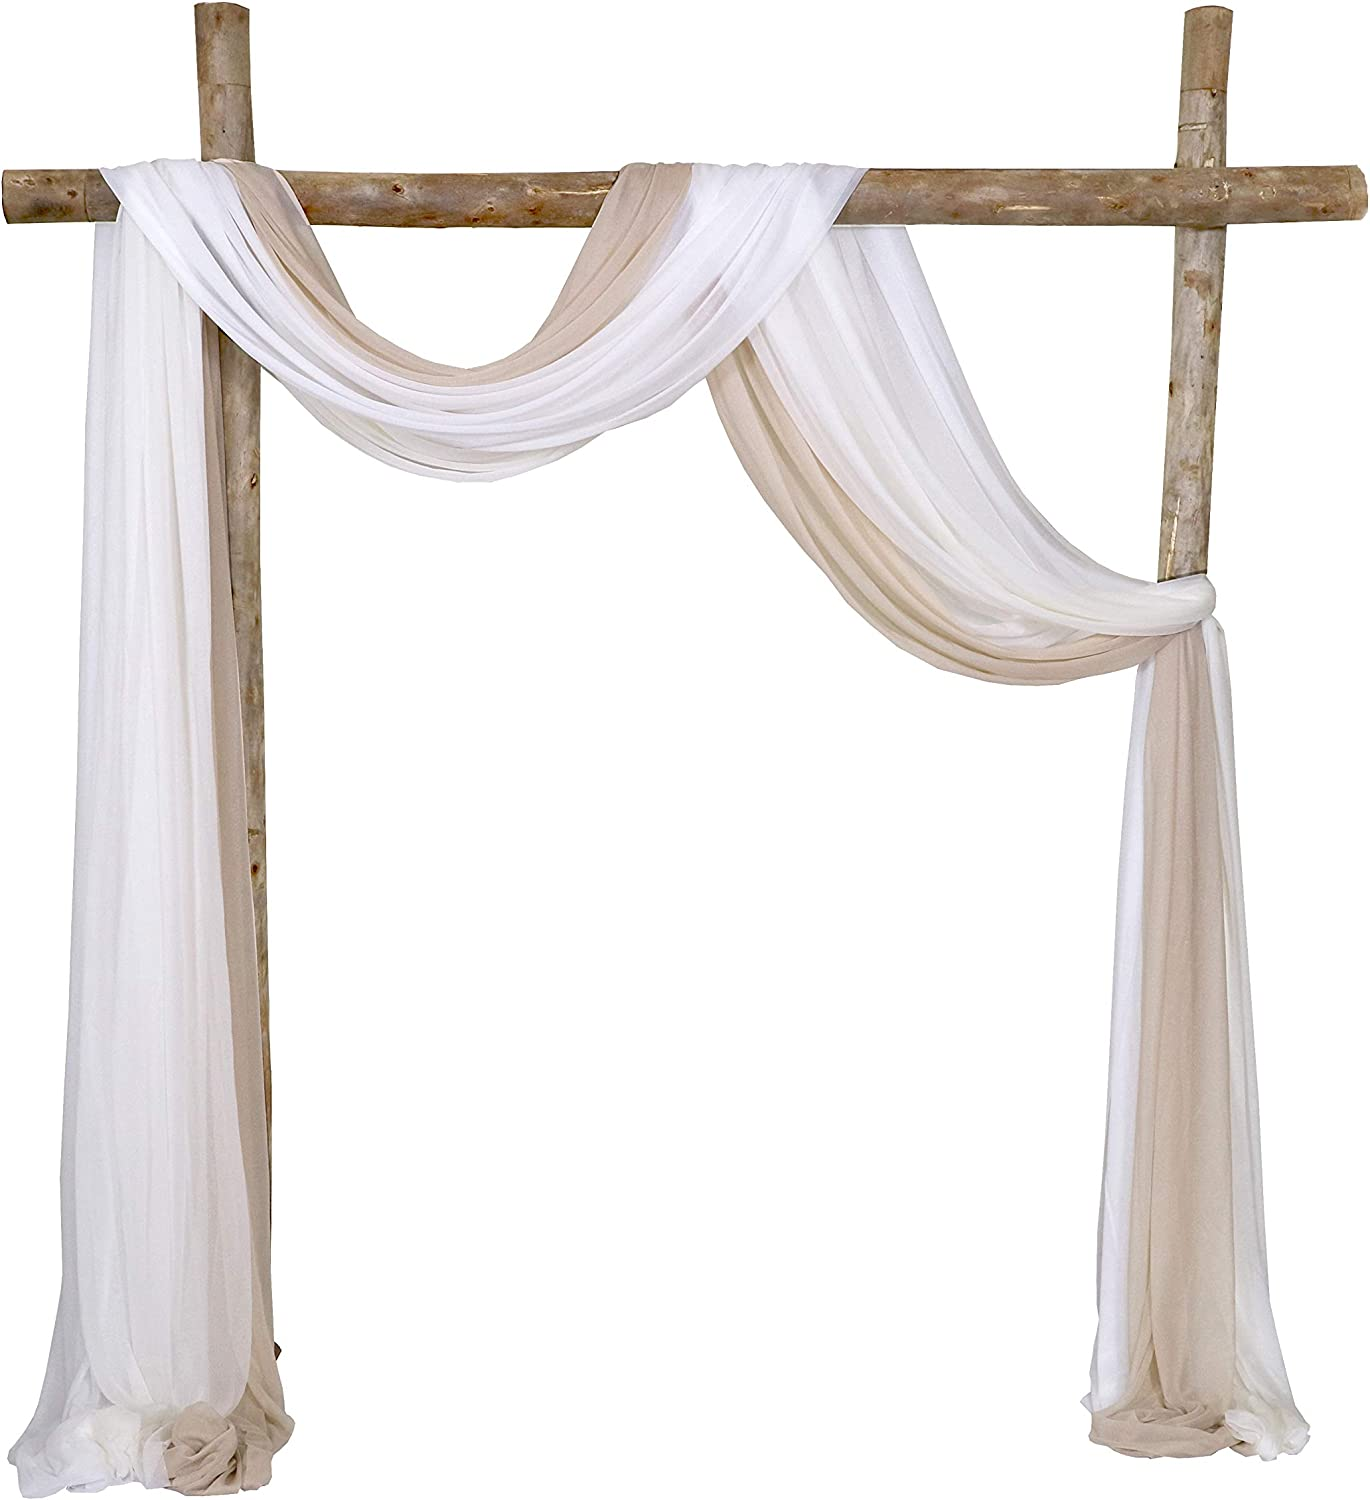 Lookein Chiffon Arch Fabric Drapes for Wedding Arbor CereDrop Decoration Stair Swag, 3 Panels 30